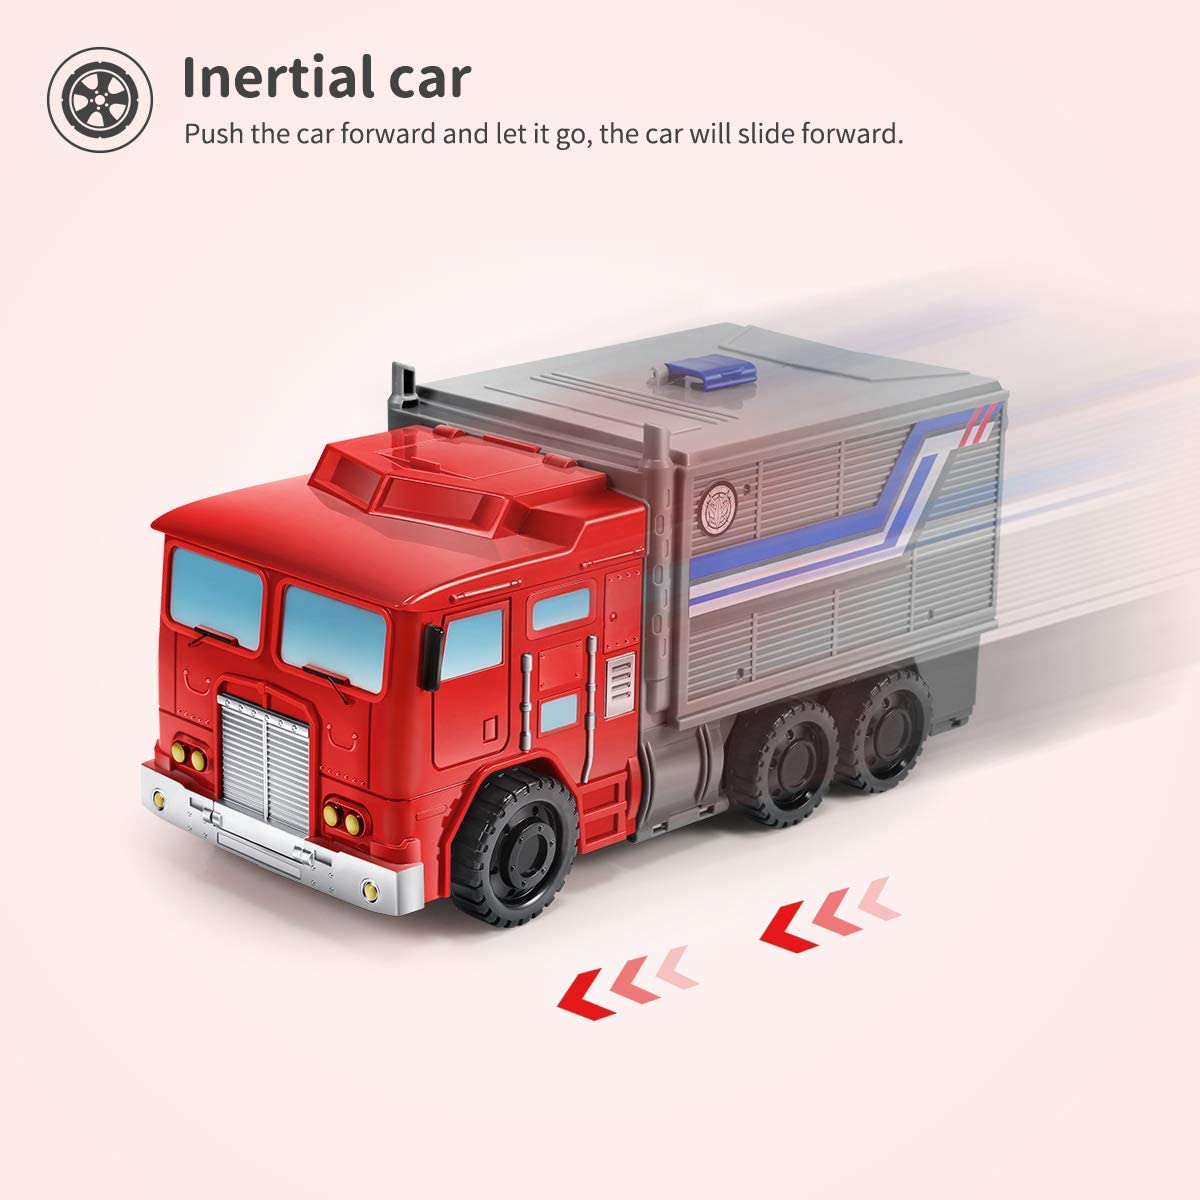 Toddler Kids Big Truck Transport Car Vehicle Transformer Parking Lot Race Tracks with 6 Pcs Diecast Metal Car Take Apart Toys Car Durable Garage Playset for Boys Geyiie Carrier Truck Toy